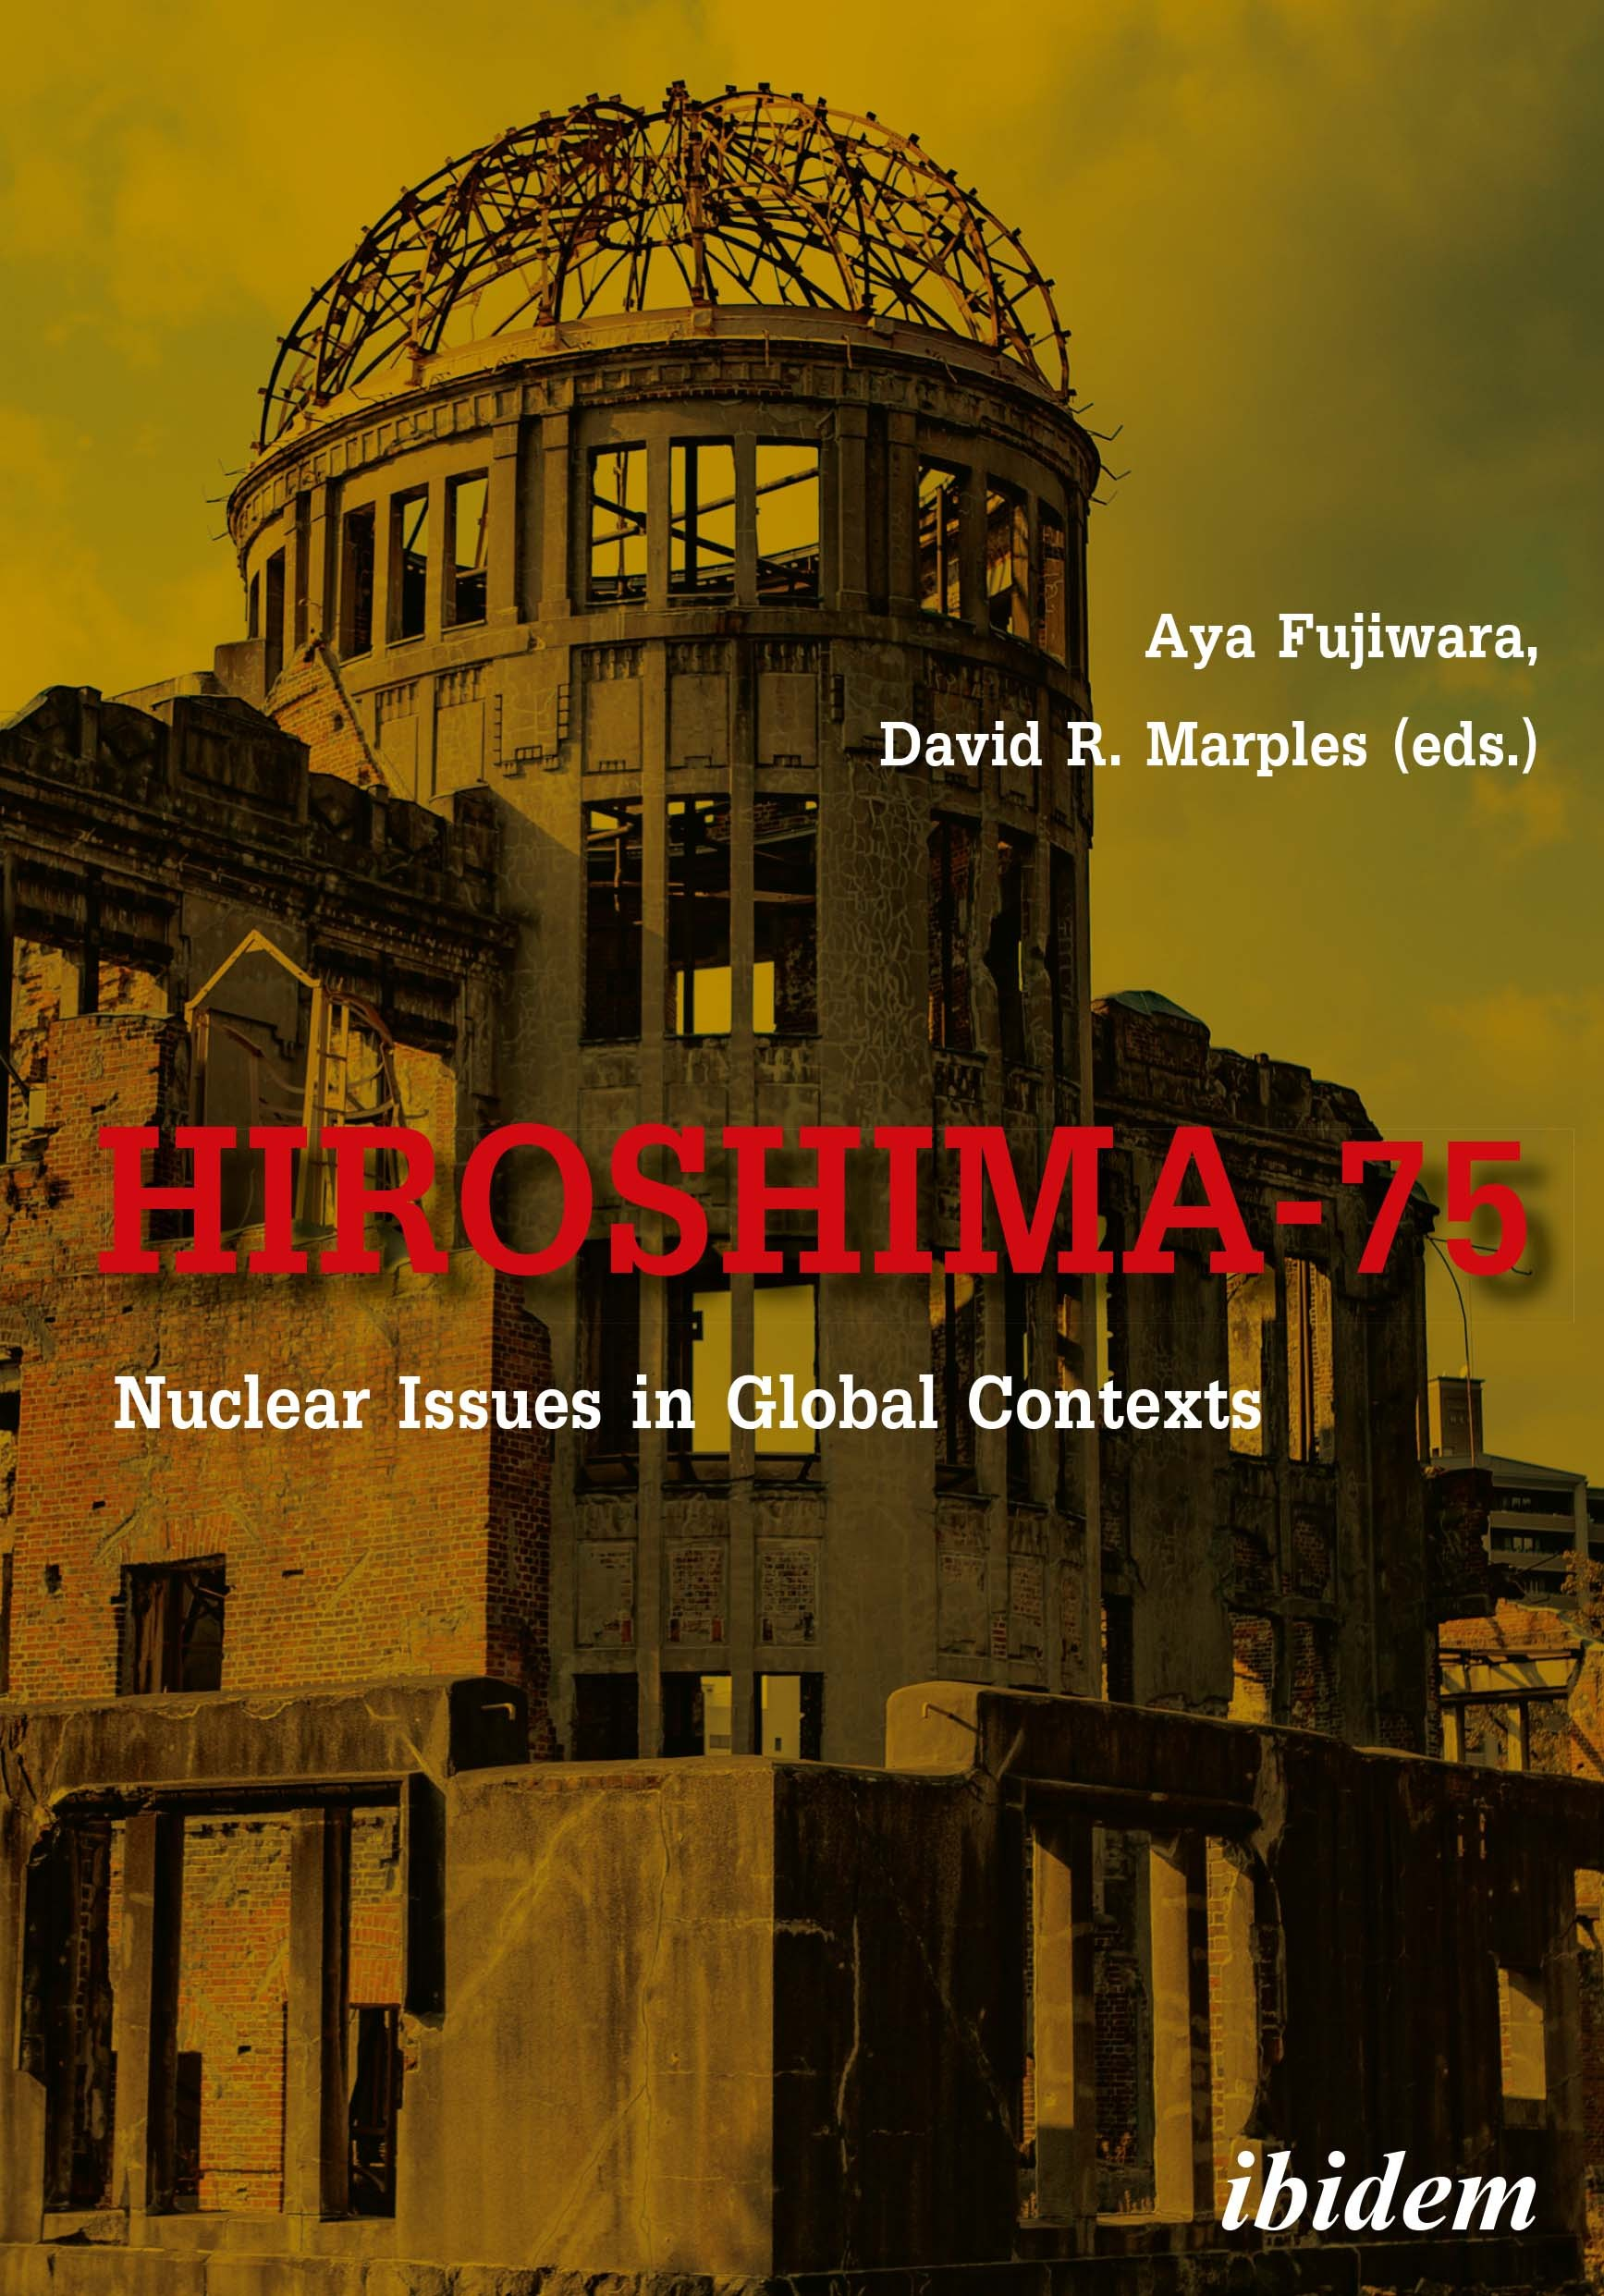 Hiroshima-75: Nuclear Issues in Global Contexts